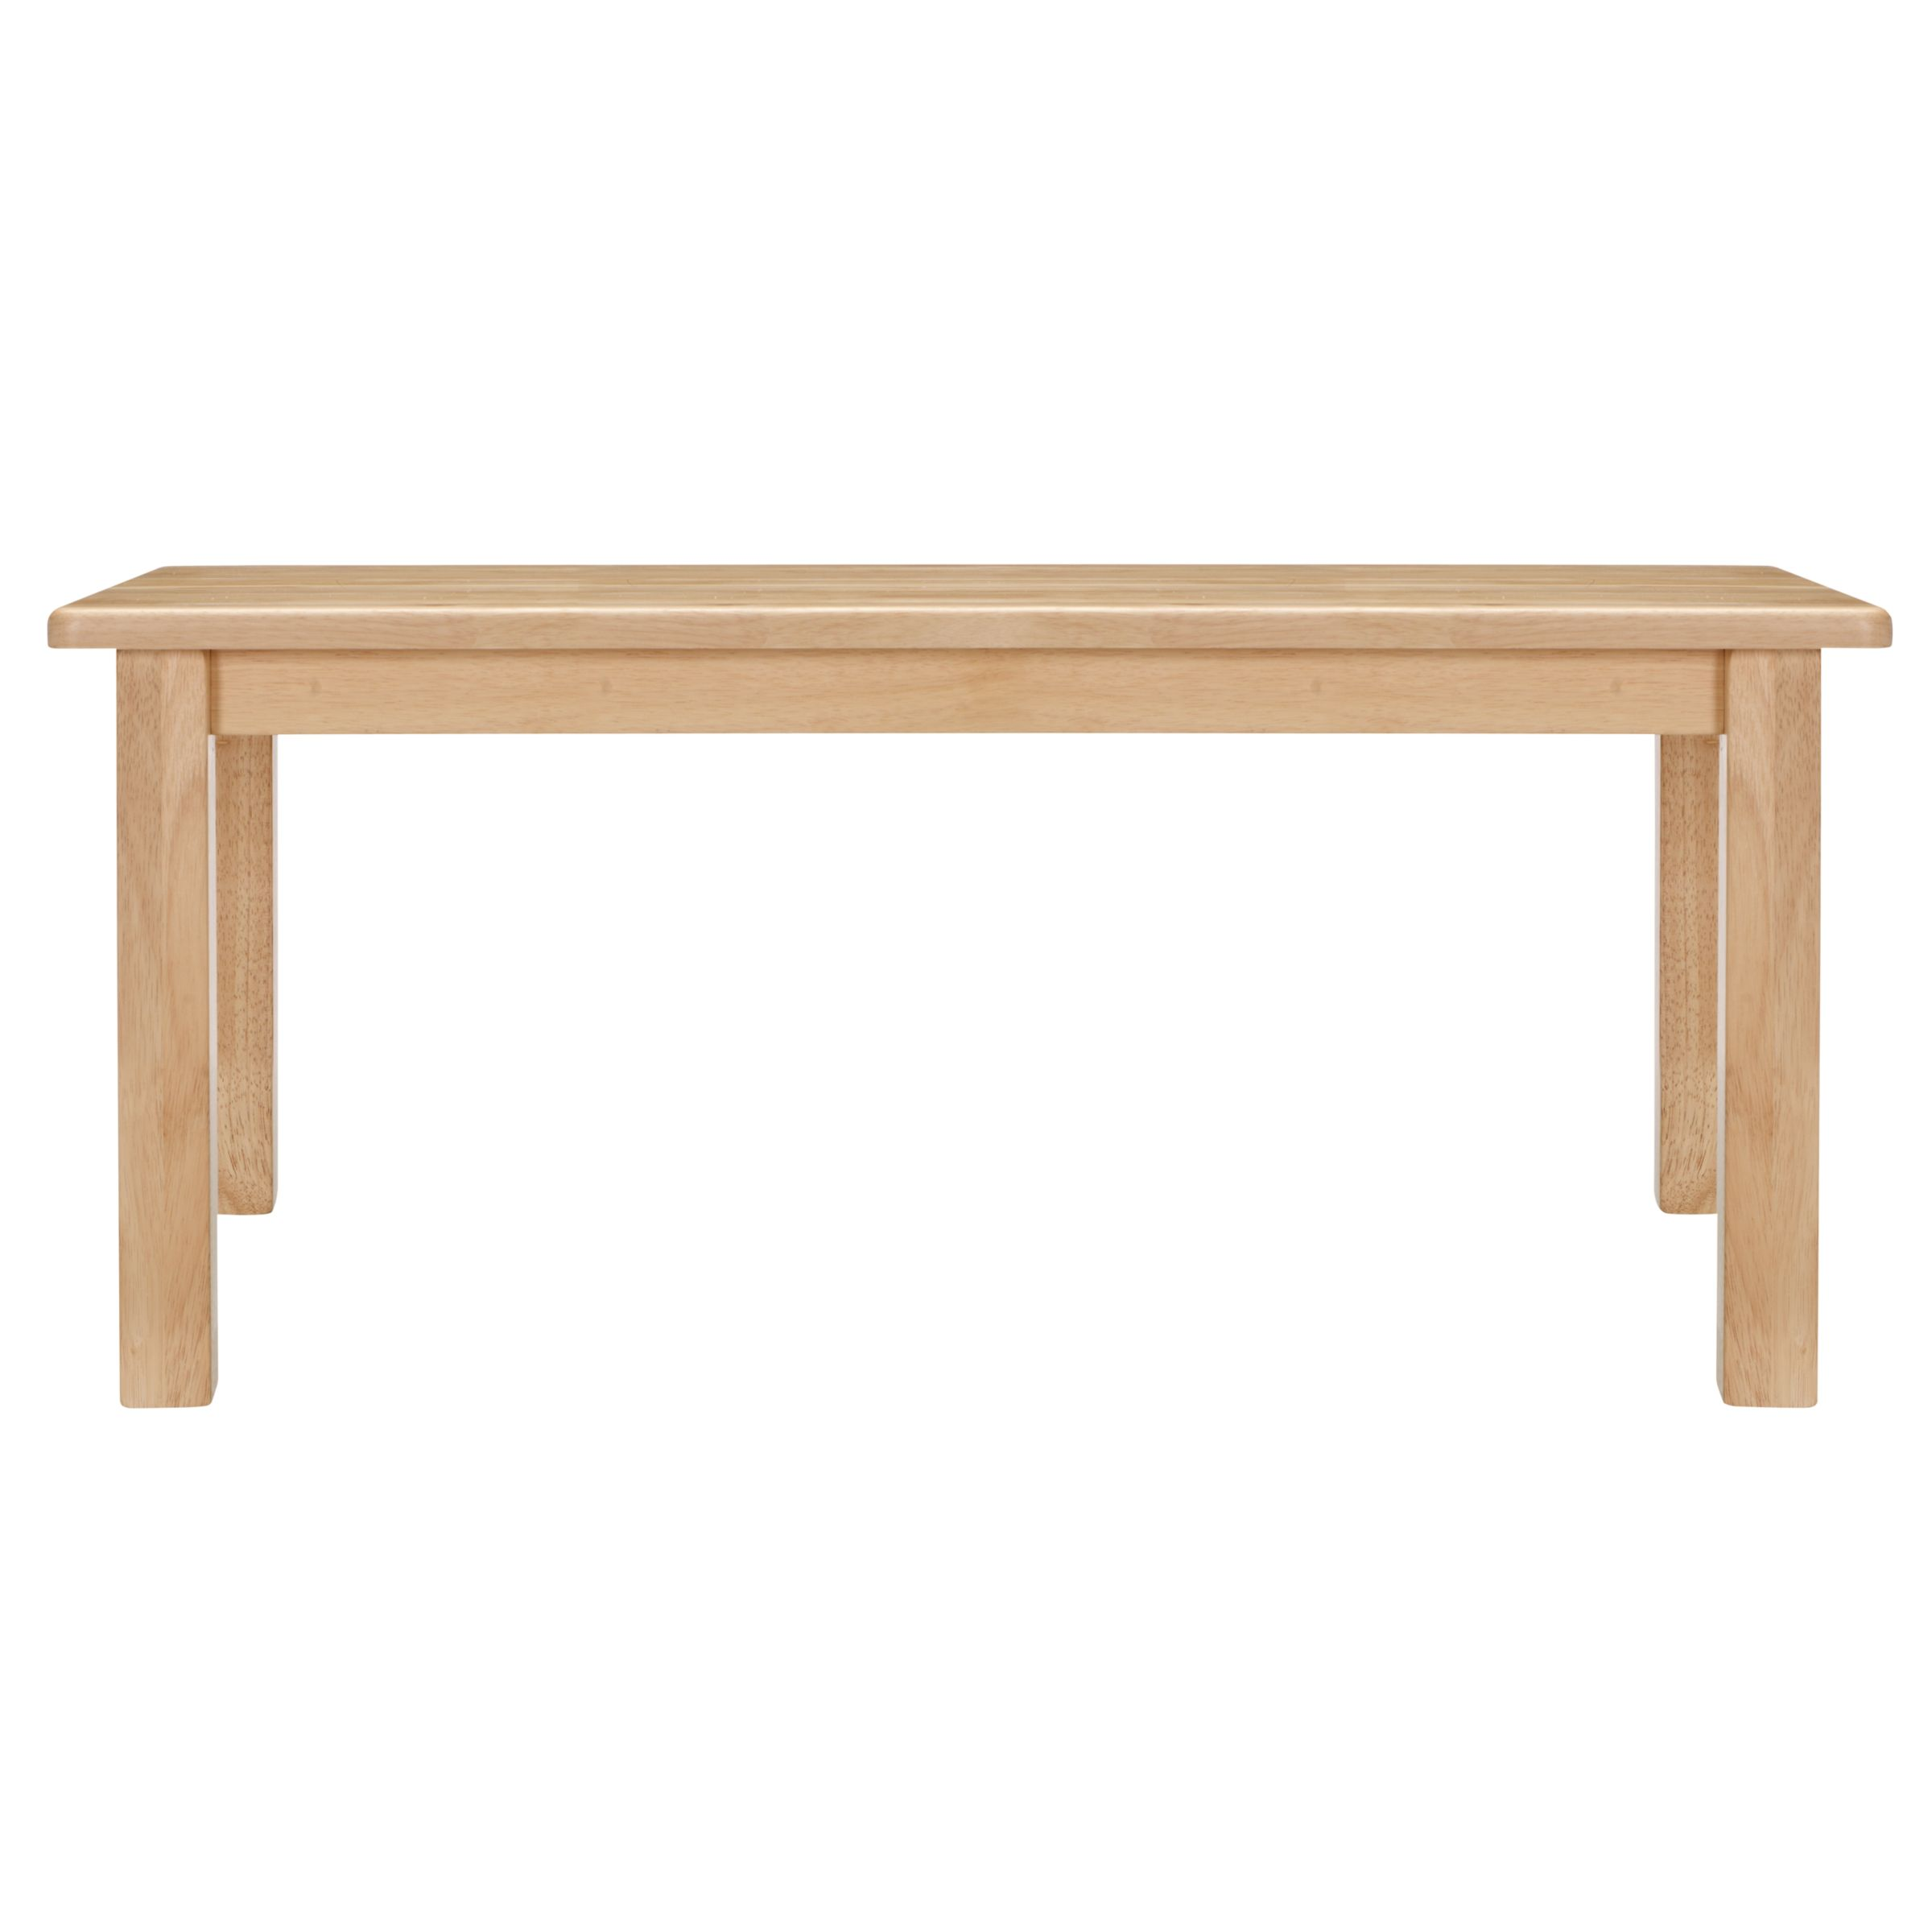 John Lewis Value Utah Value Coffee Table review compare  : 230823218 from www.comparestoreprices.co.uk size 1600 x 1600 jpeg 83kB